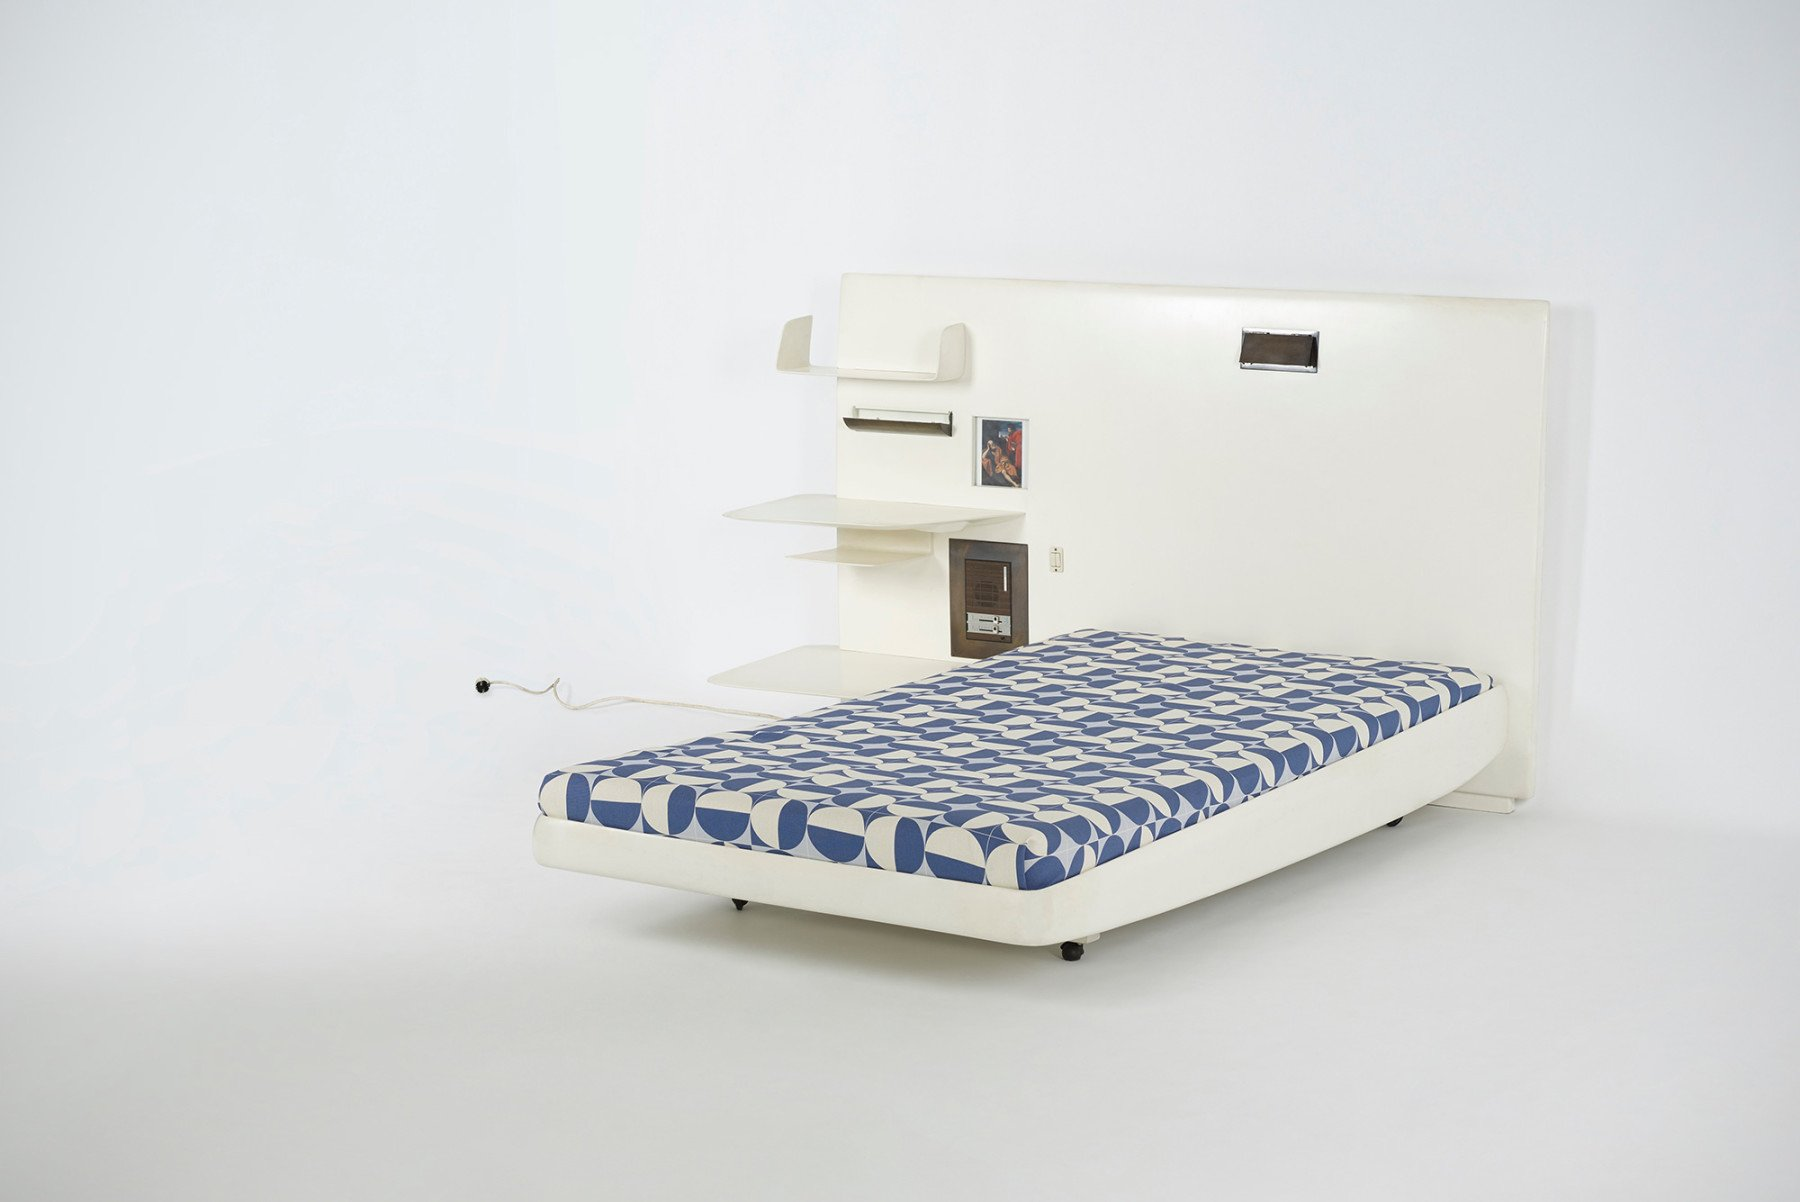 Gio Ponti |   Headboard and Daybed for X Selettiva of Cantu